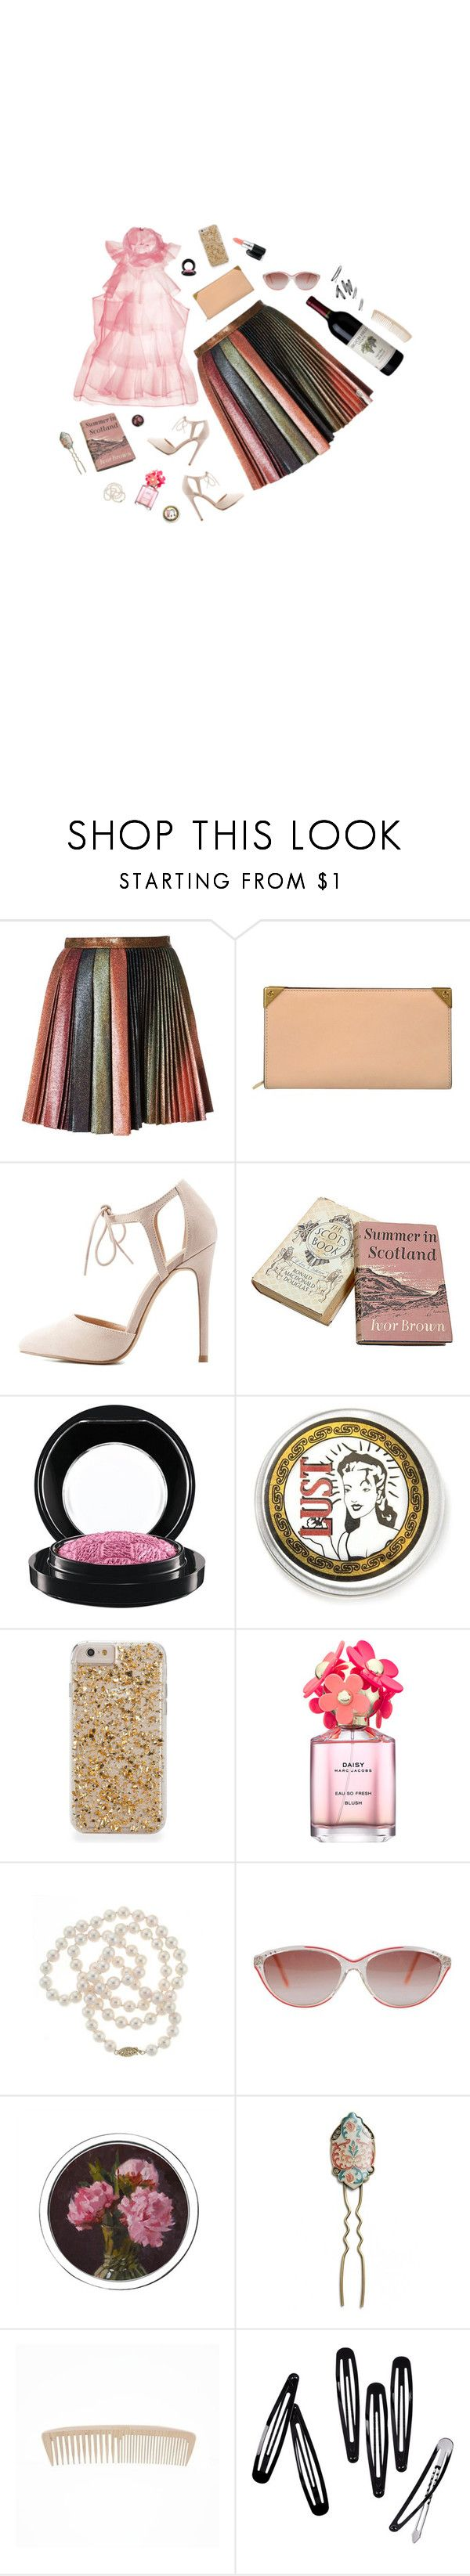 """""""Pinnacle"""" by jetra13 ❤ liked on Polyvore featuring Marco de Vincenzo, Alexander Wang, Charlotte Russe, MAC Cosmetics, Marc Jacobs, DaVonna, Yves Saint Laurent, L. Erickson and H&M"""